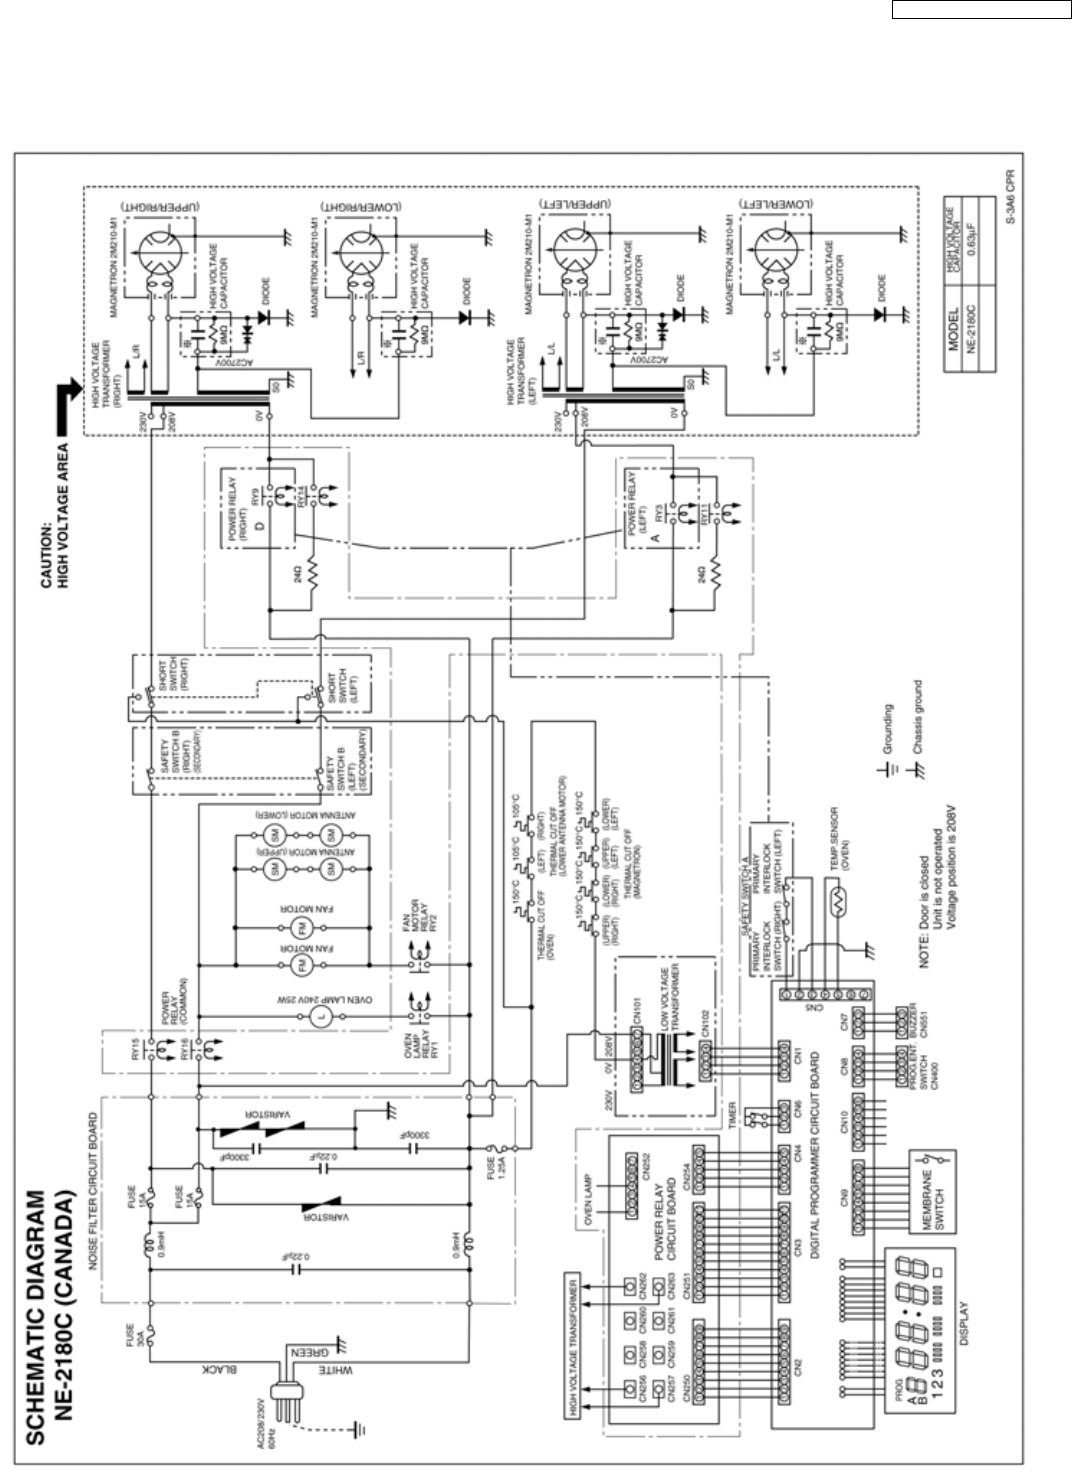 simple am receiver circuit diagram car stereo wiring pirate radio fm transmitter schematic